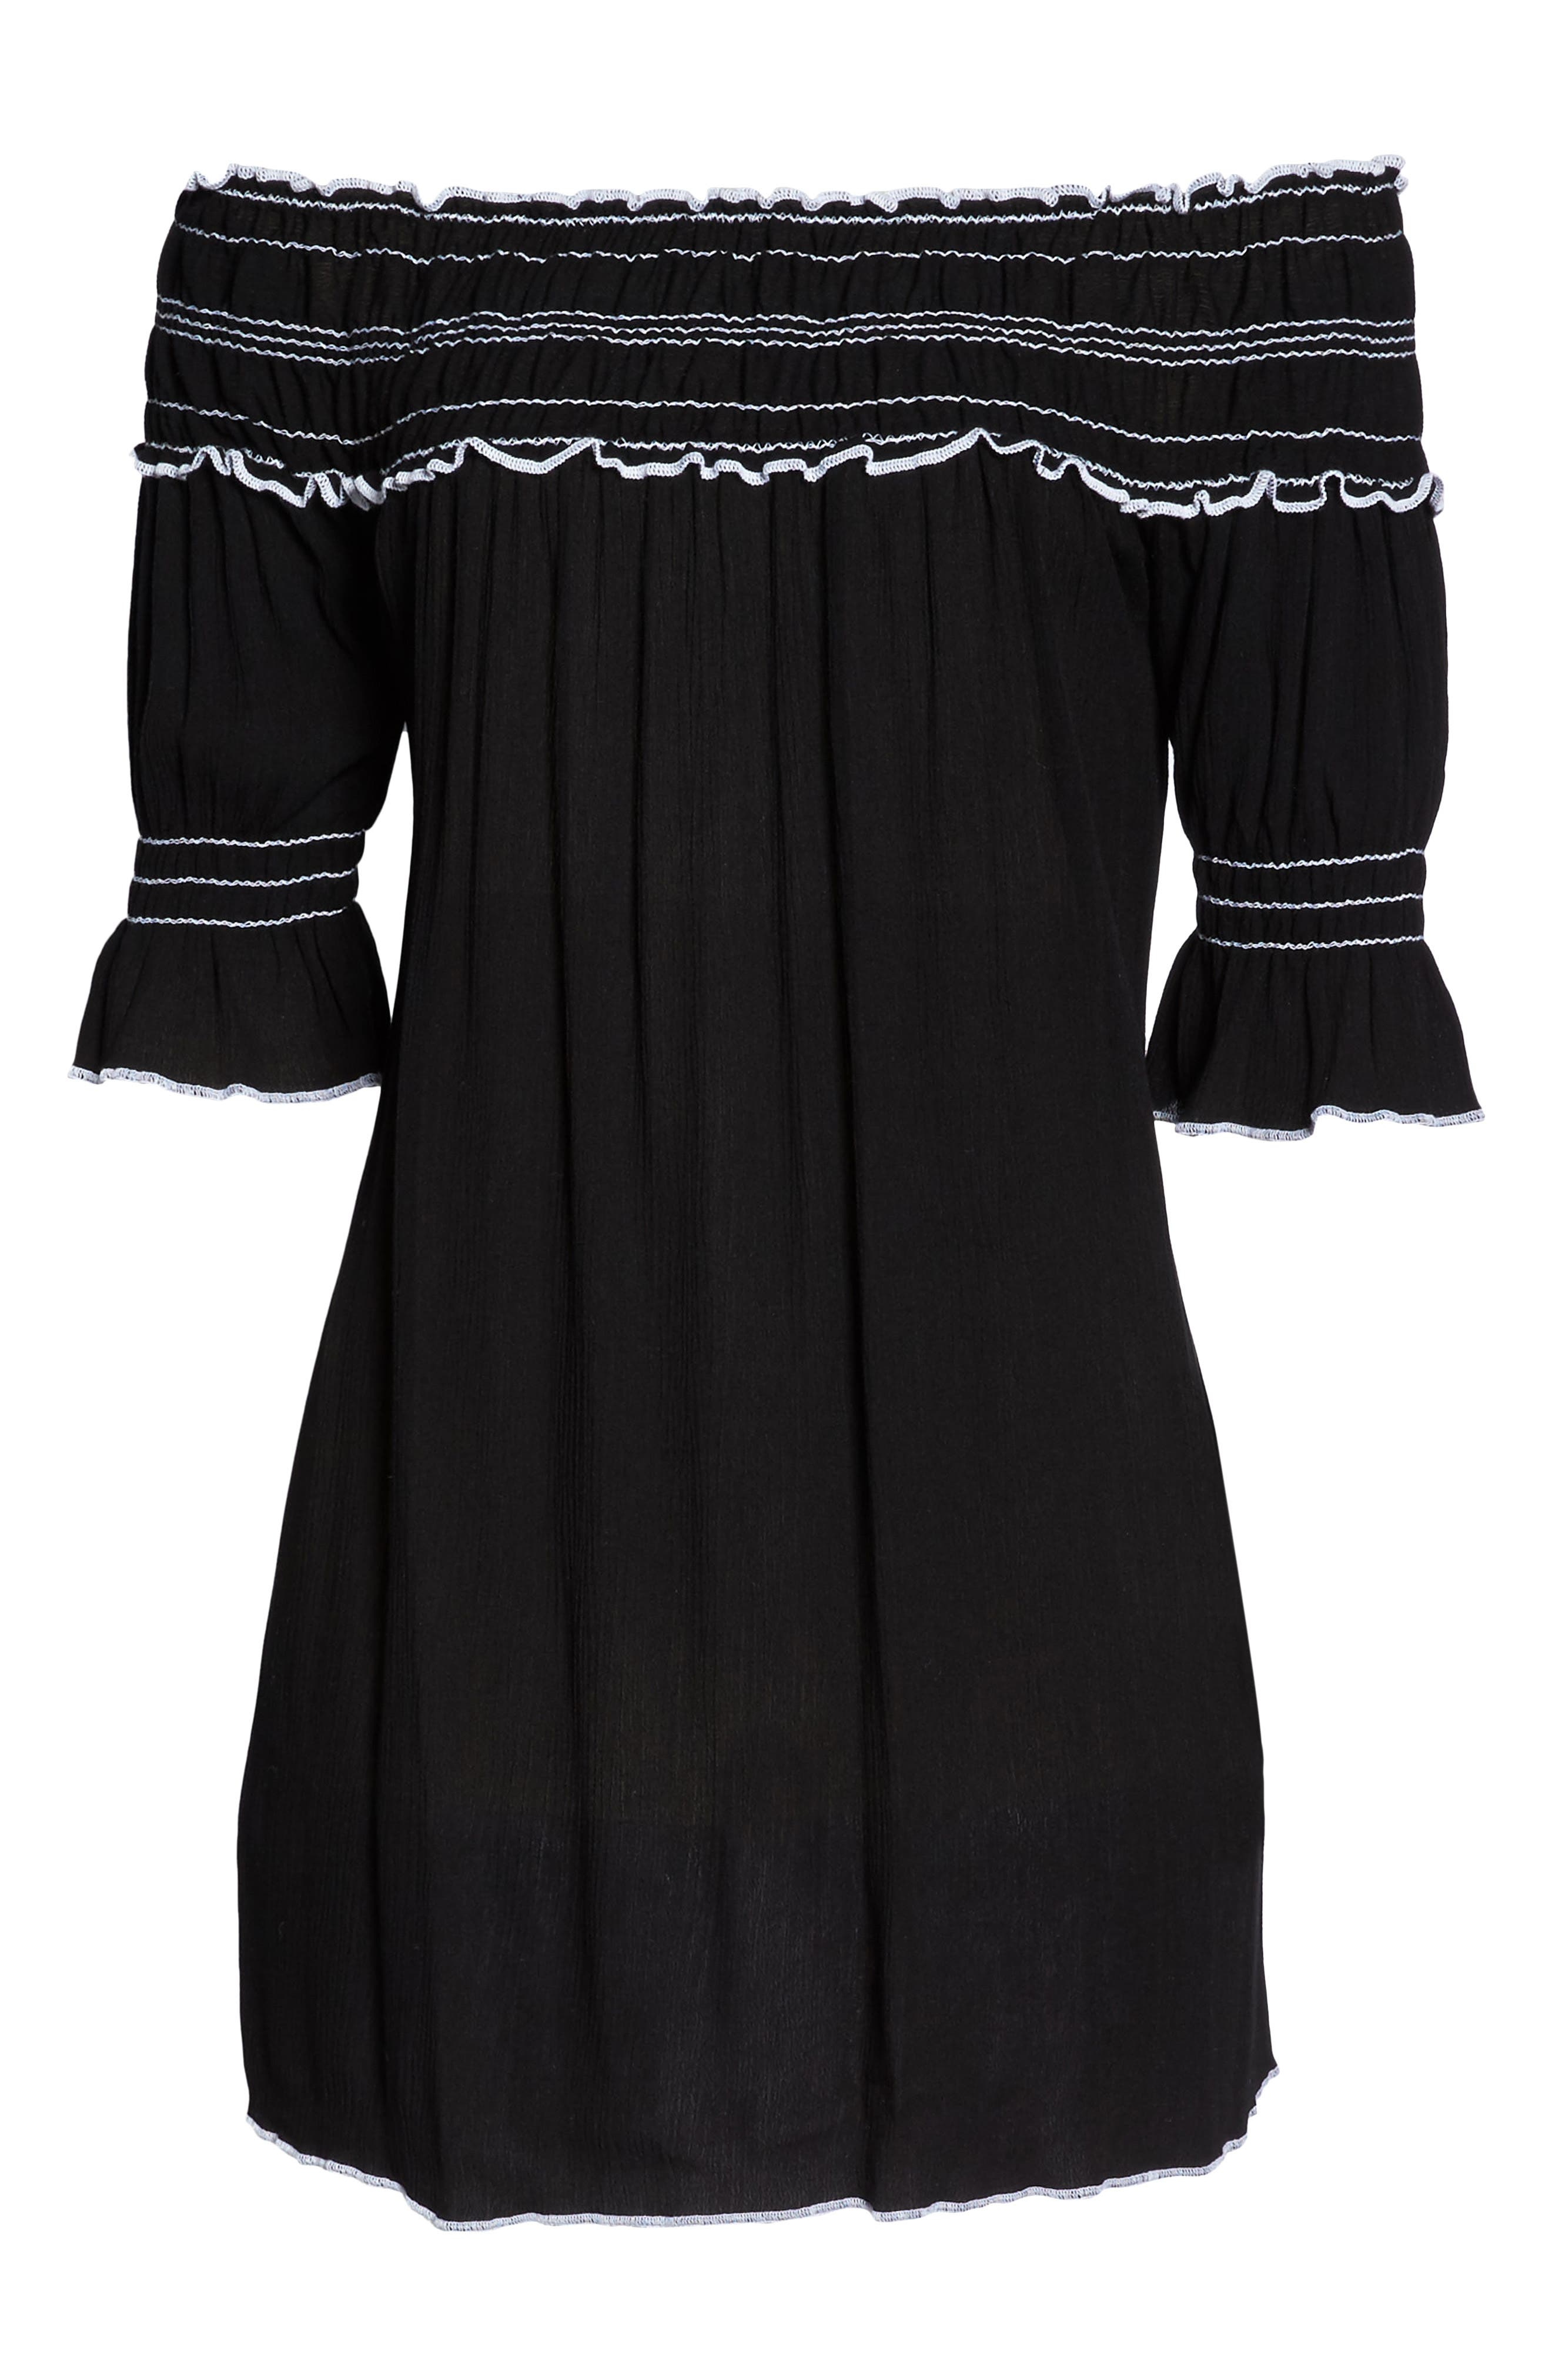 Nightingale Off the Shoulder Cover-Up Dress,                             Alternate thumbnail 6, color,                             001